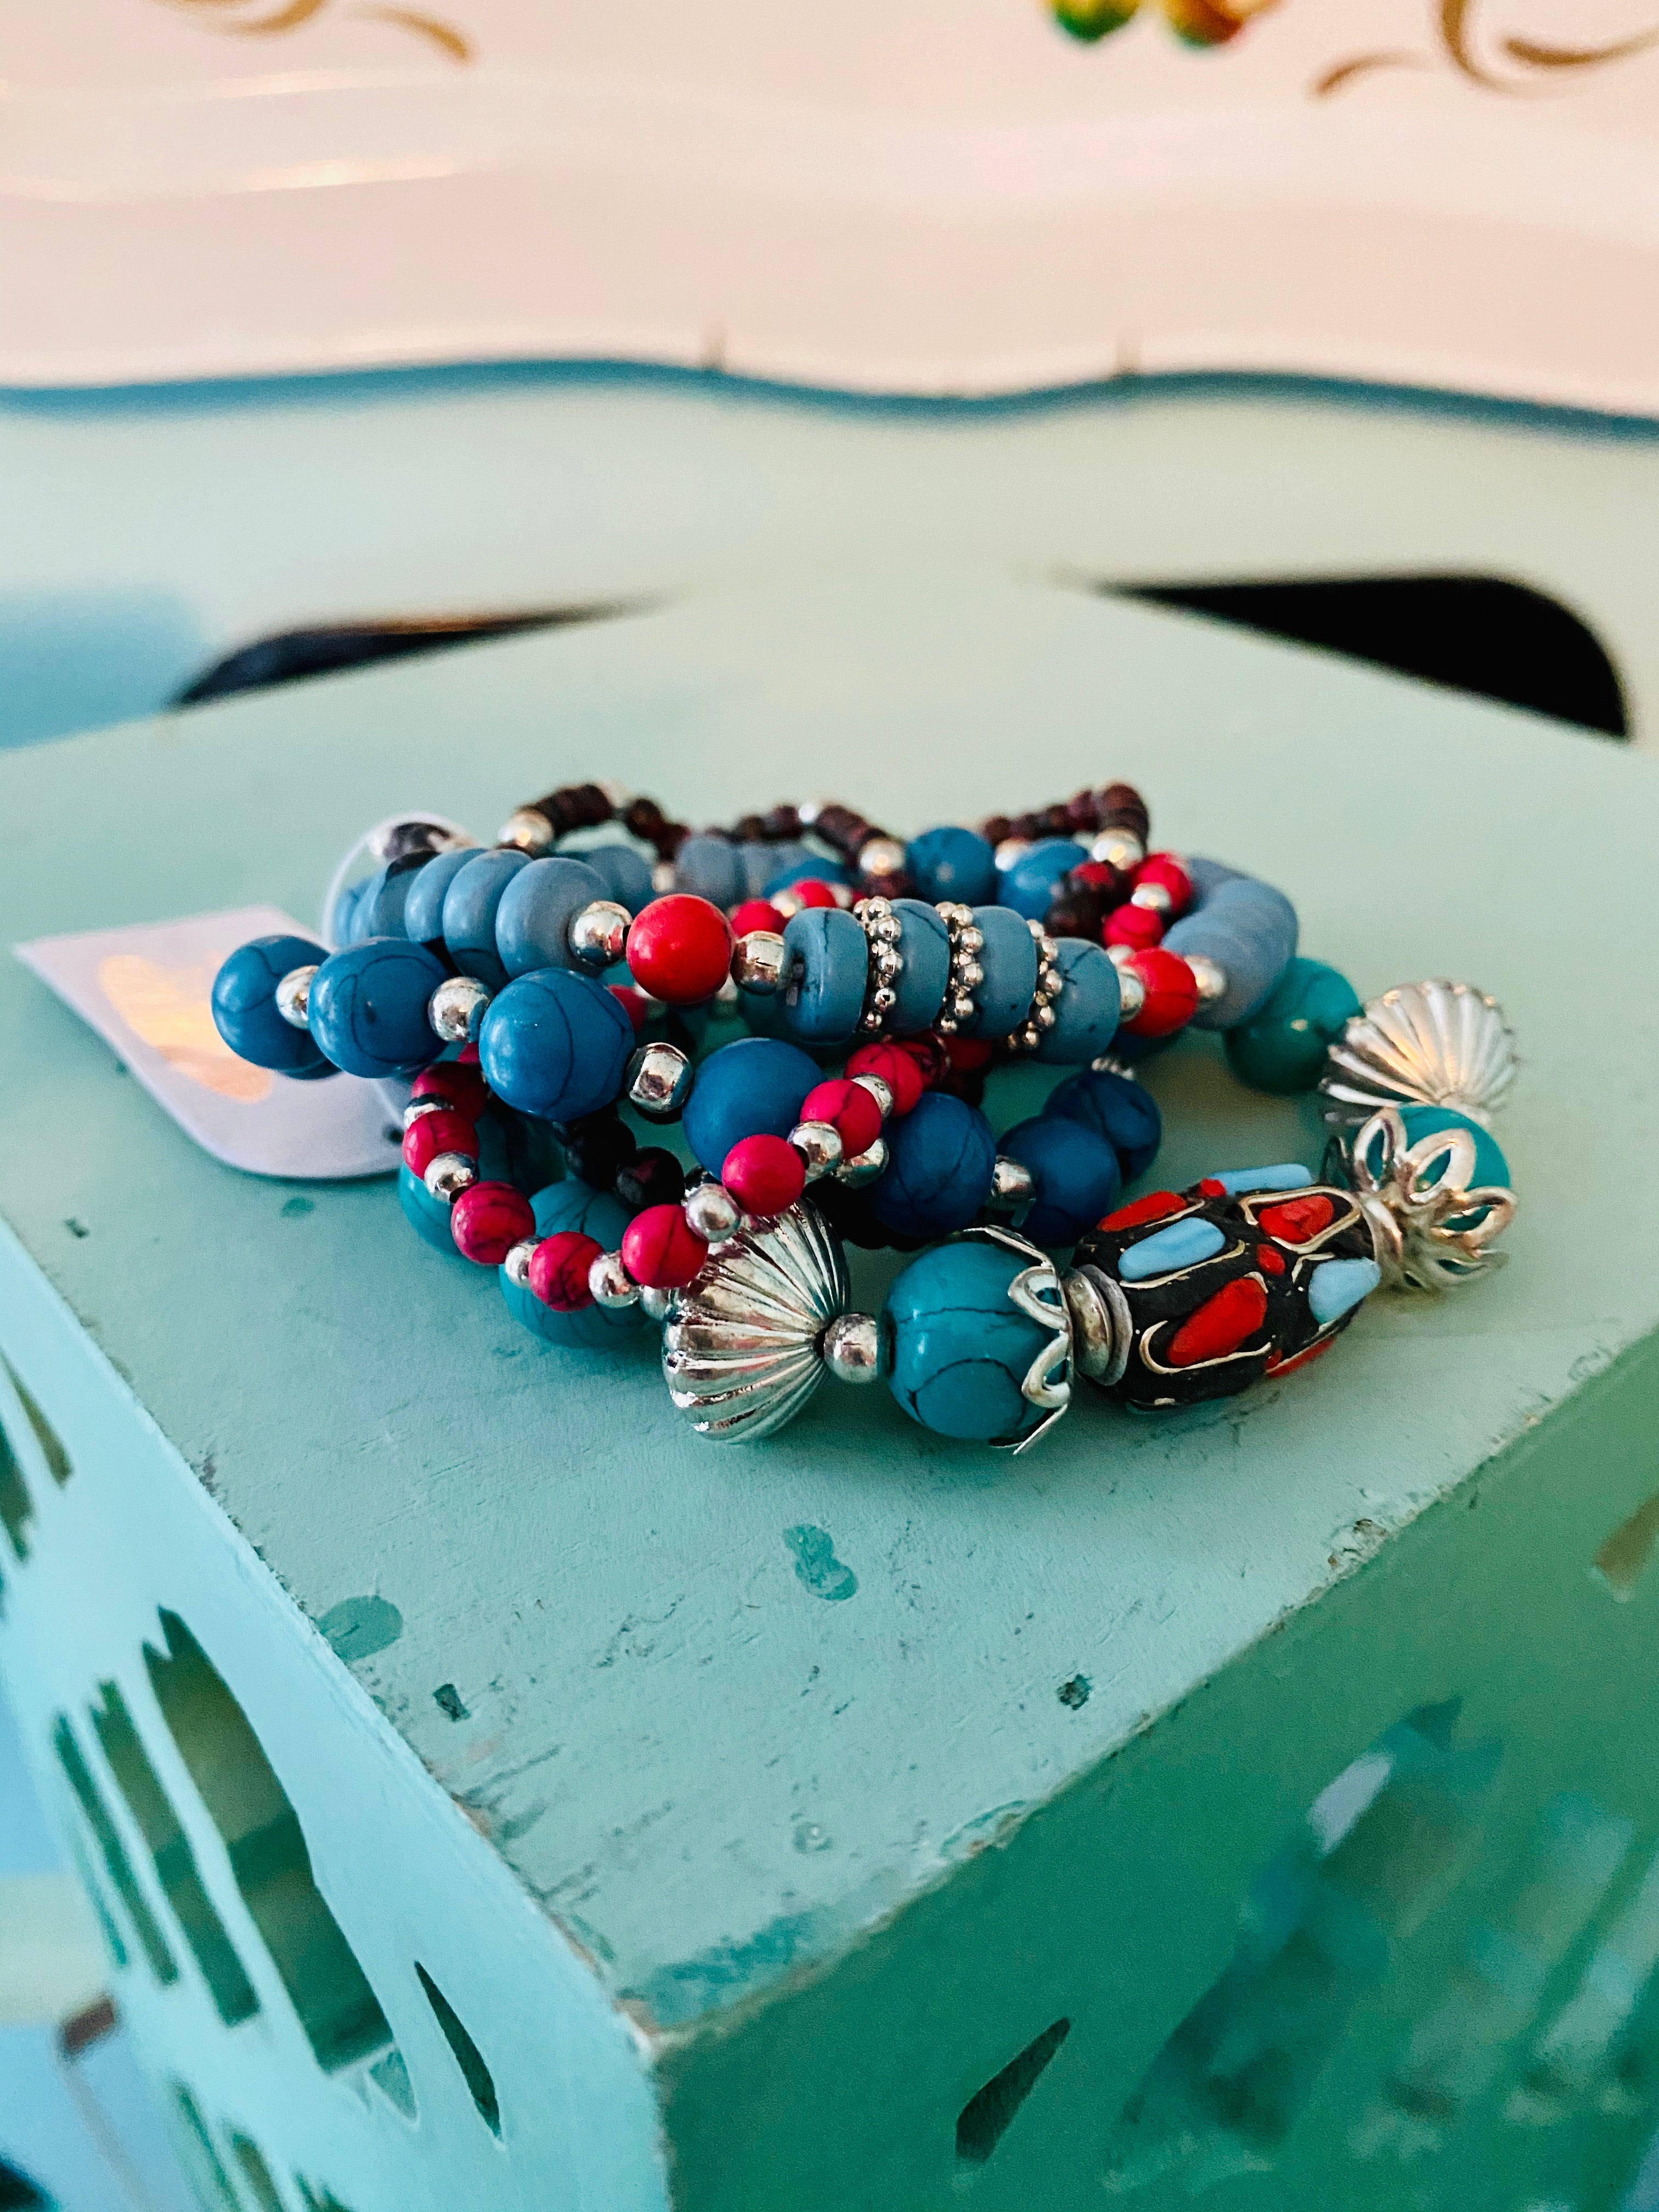 SET: Stone & Clay Beads in Red & Turquoise - set of 5